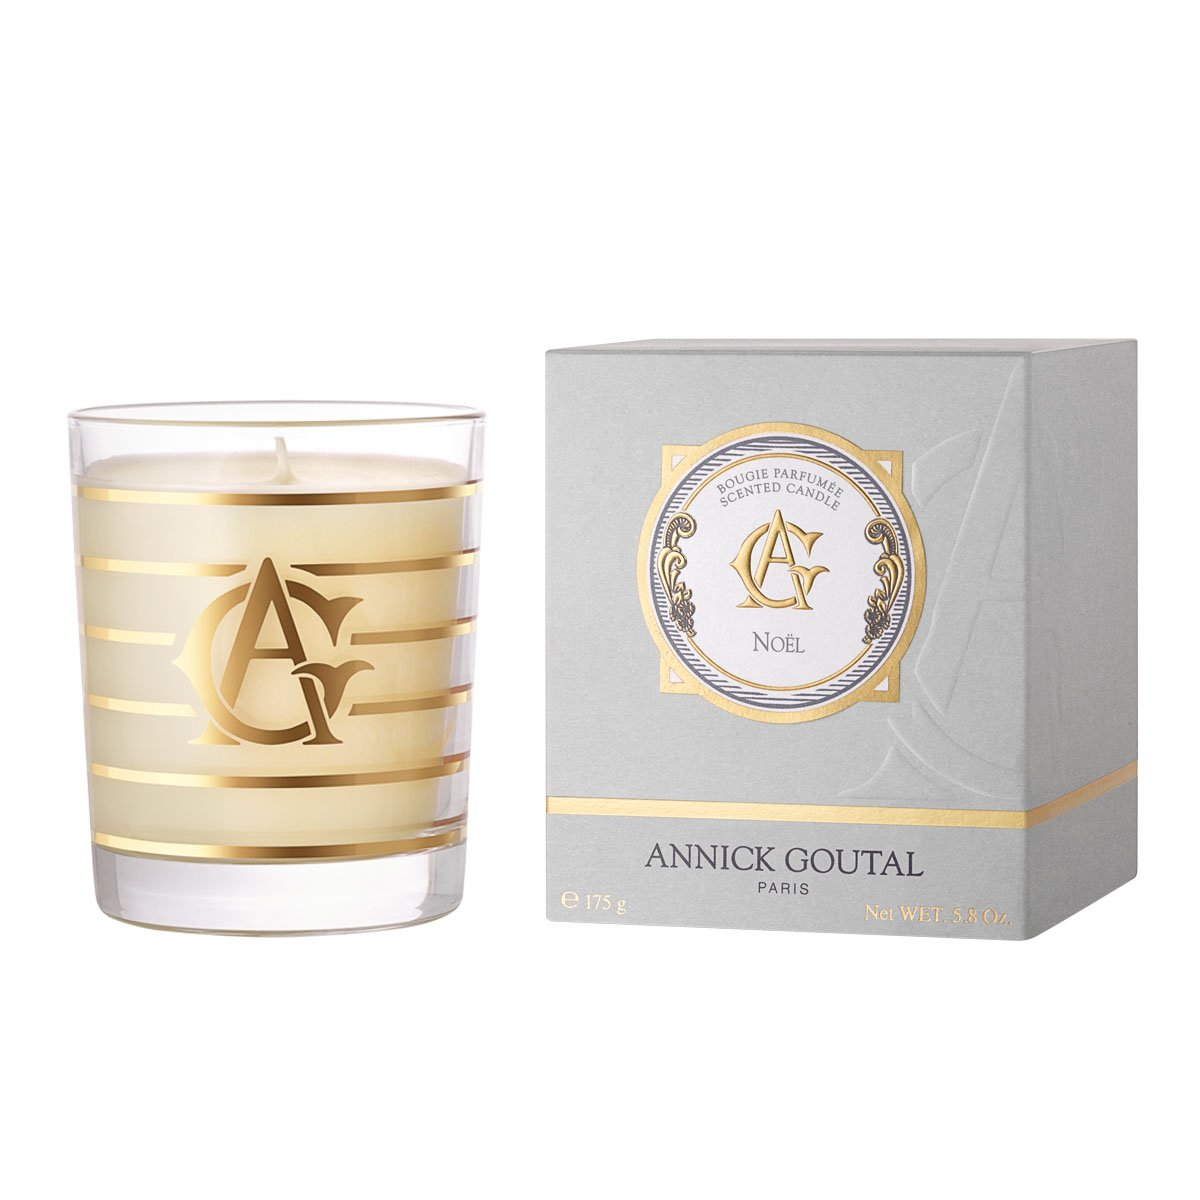 Annick Goutal Noel Perfumed Candle, 5.8 Ounce